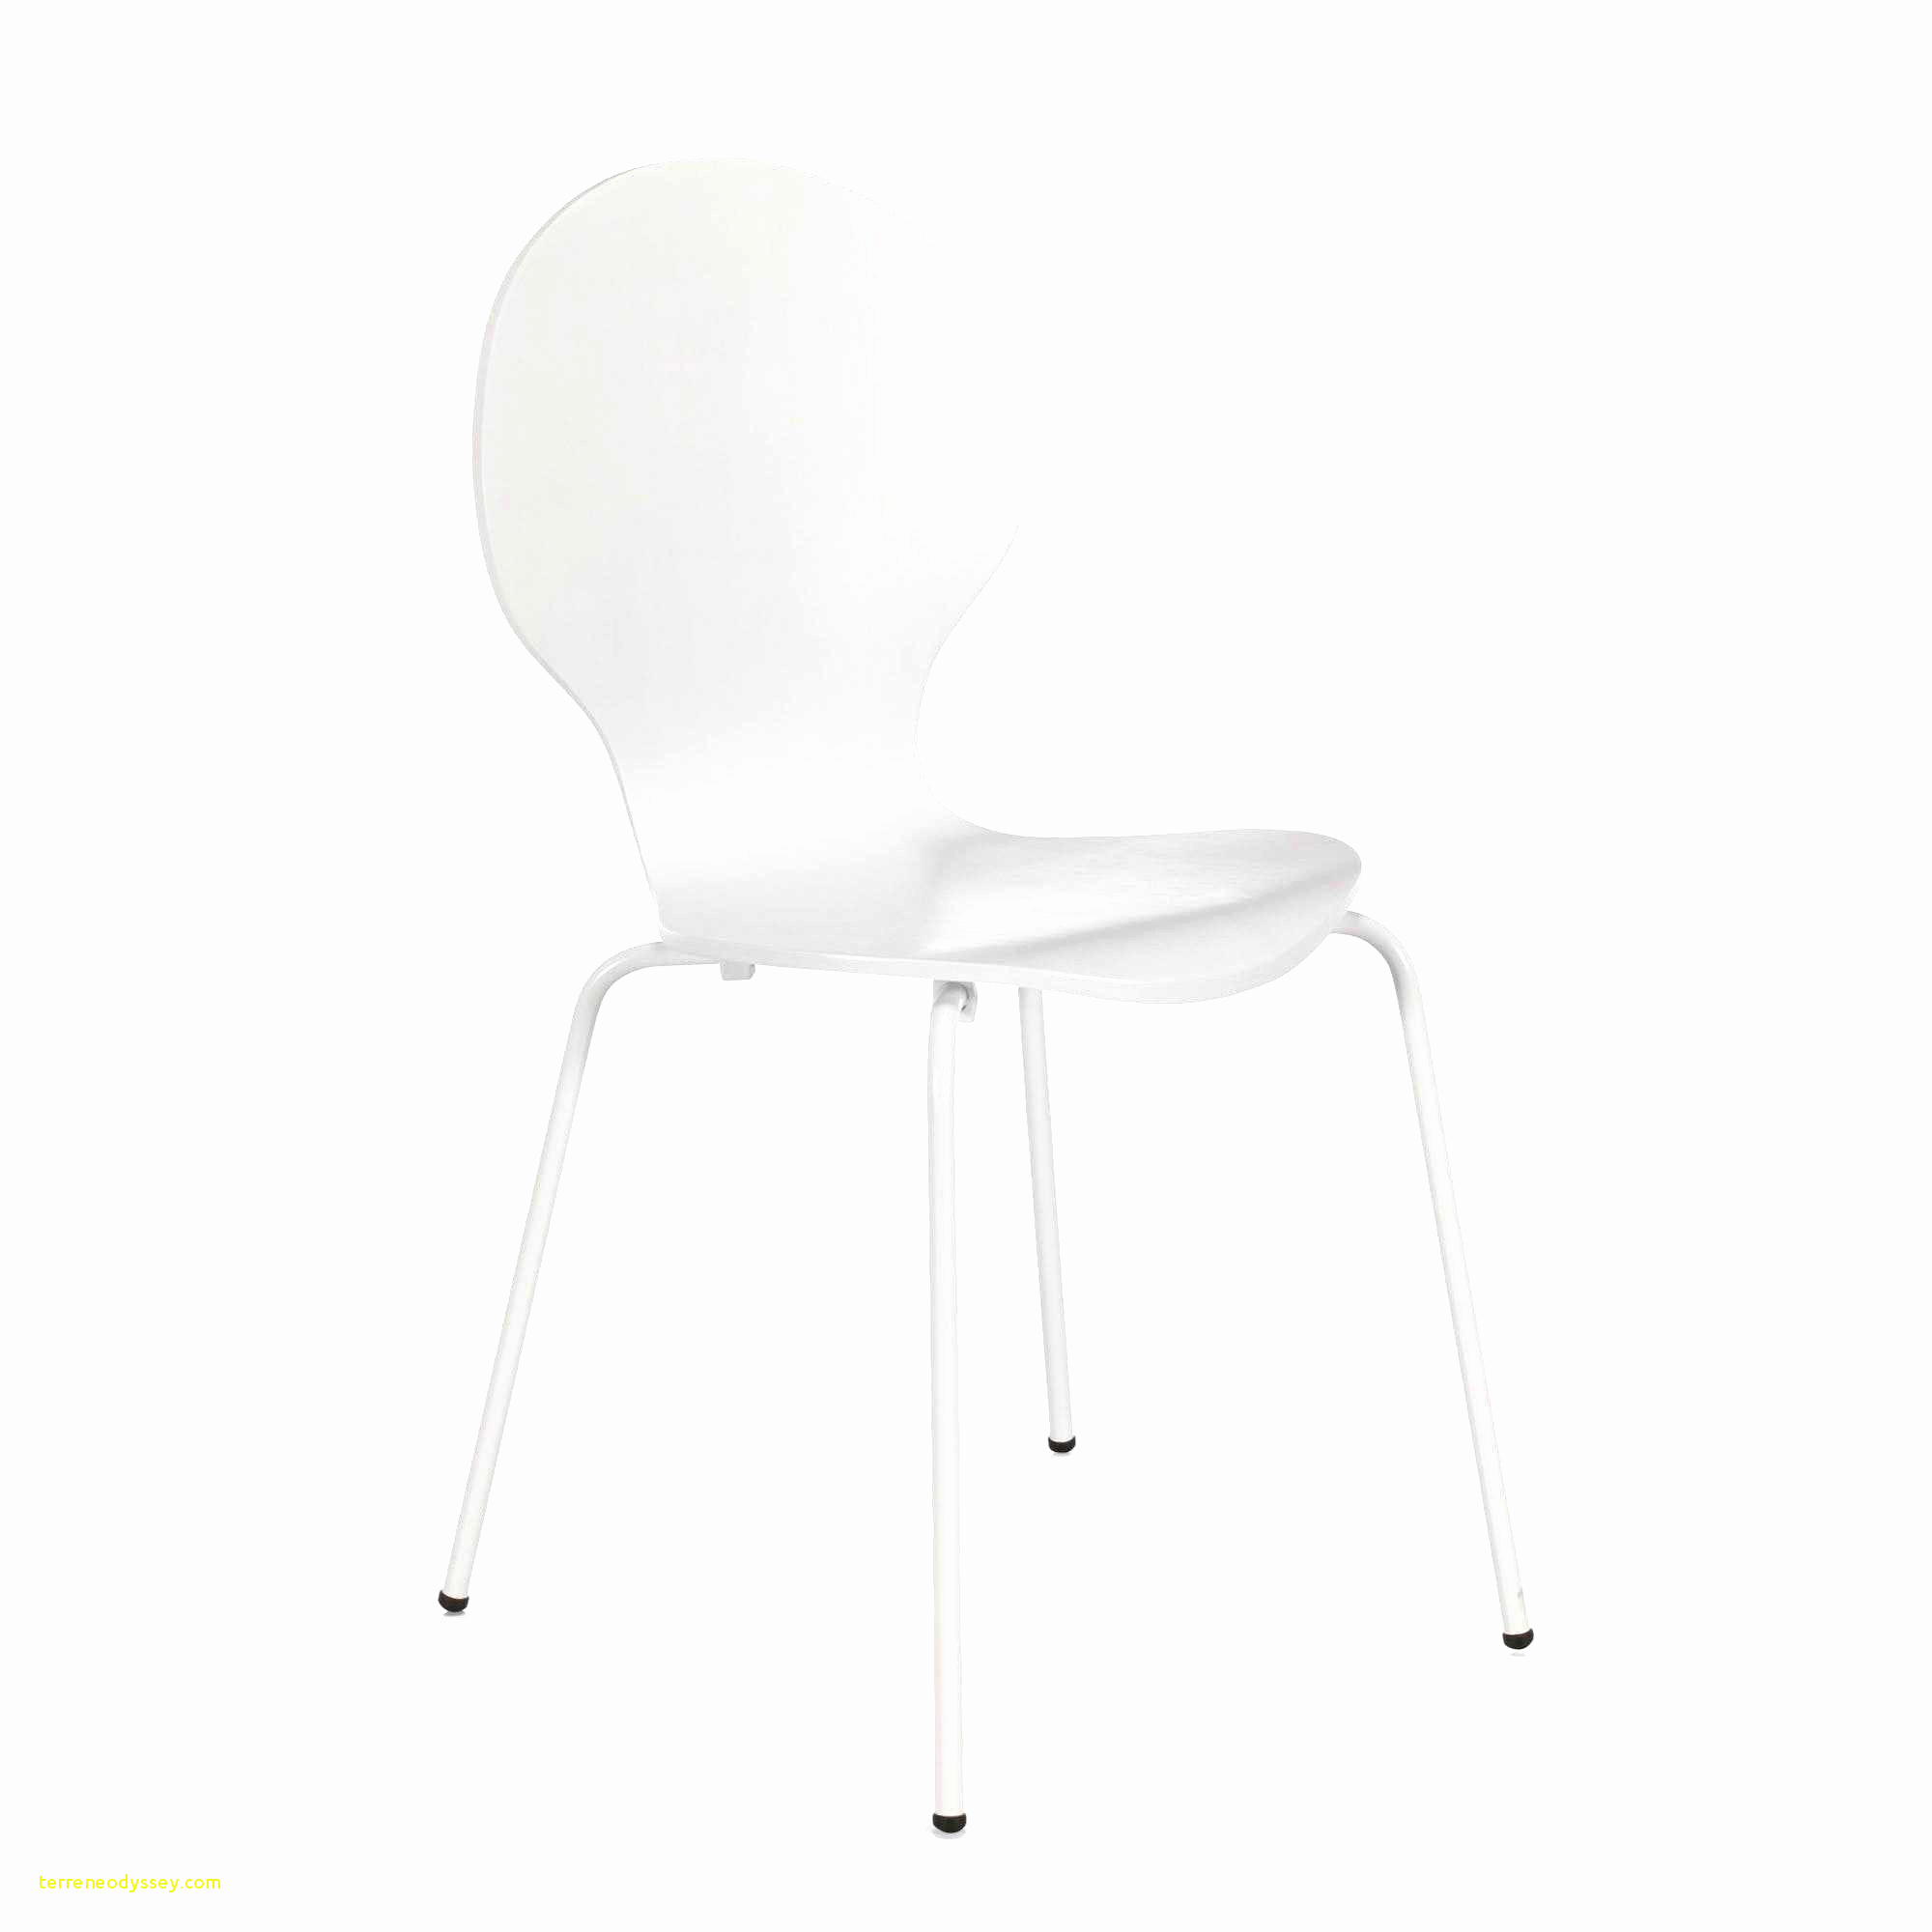 fauteuil rotin pas cher impressionnant fauteuil osier pas cher dancingewe yarns of fauteuil rotin pas cher